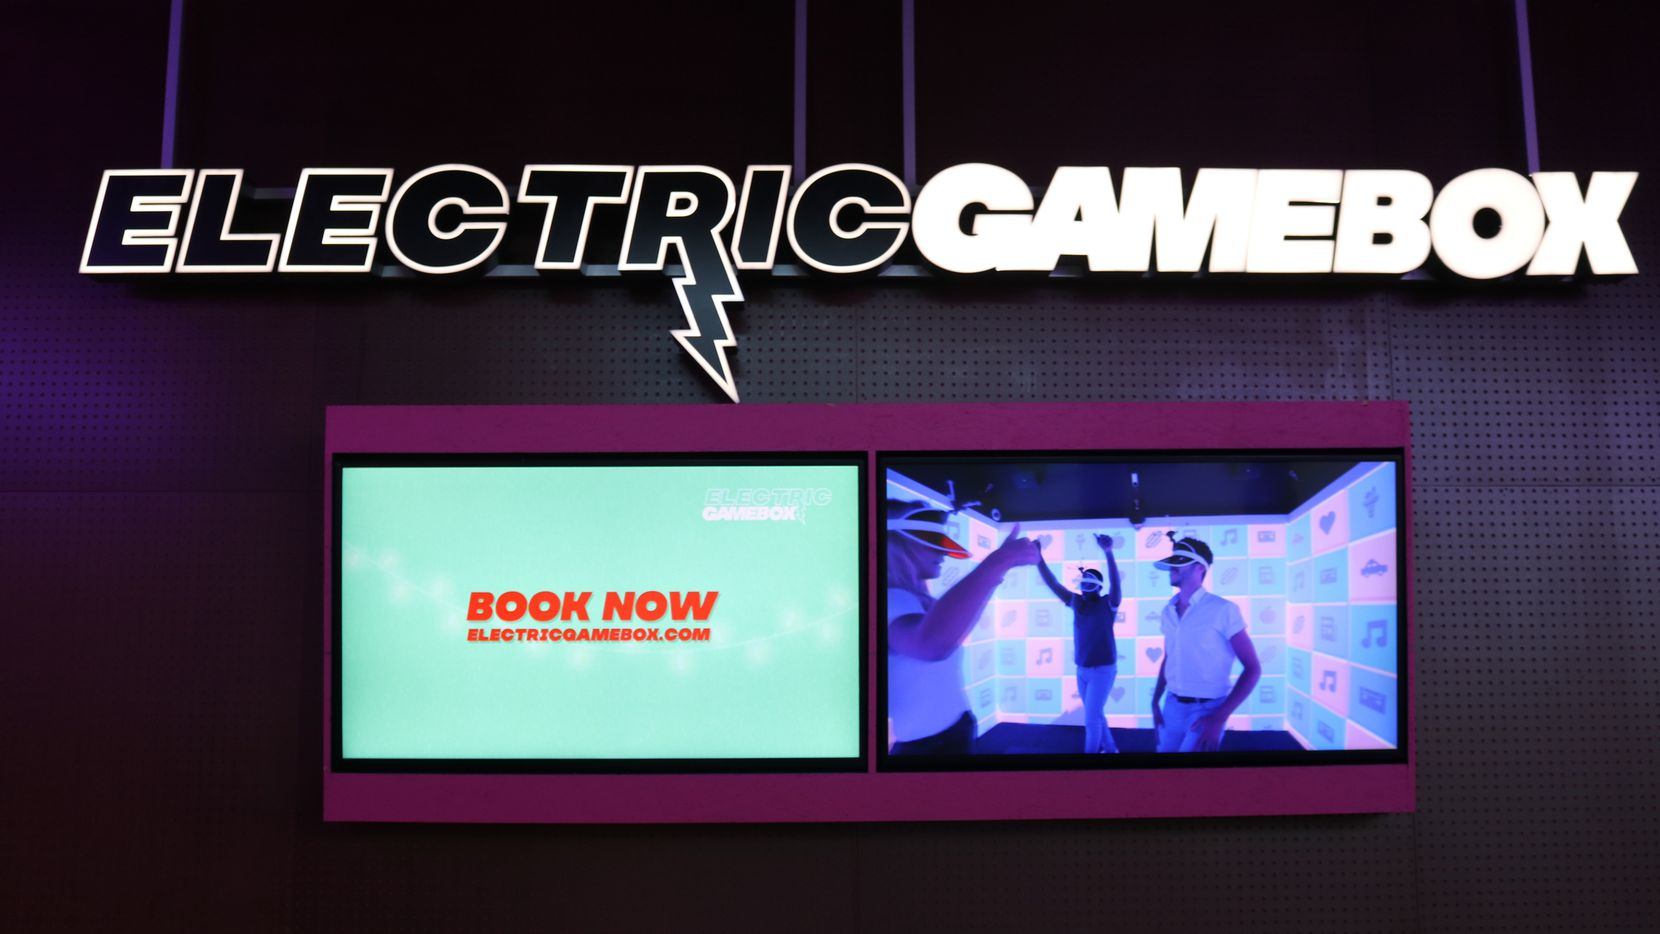 Electric Game Box opened its first U.S. location in The Colony in Grandscape. It plans to open three more locations in Texas this year as it expands internationally.